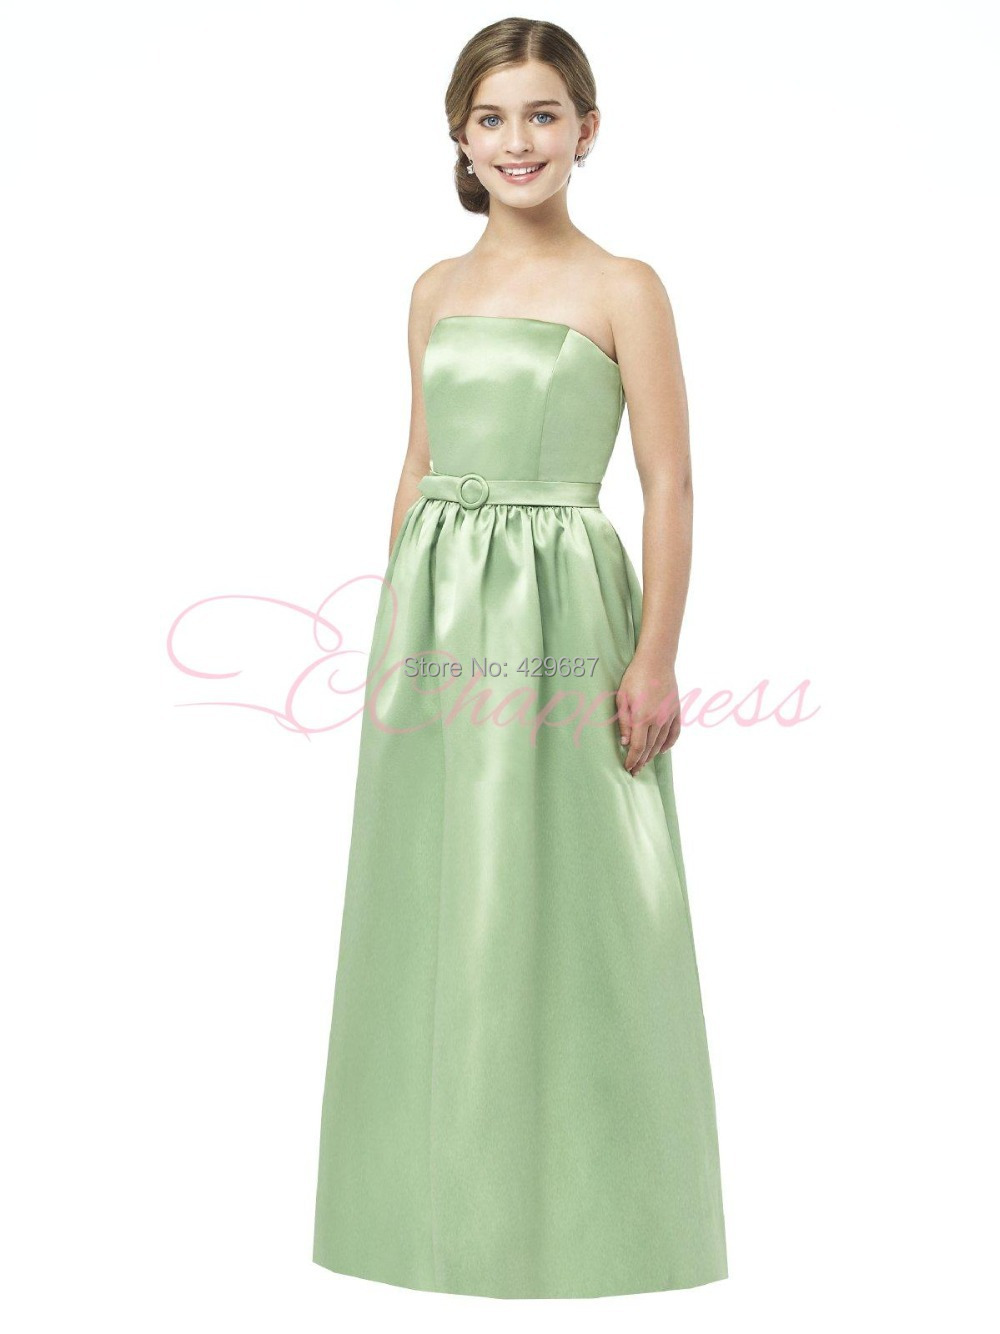 Floor length satin junior bridesmaid dress fashion dresses floor length satin junior bridesmaid dress ombrellifo Choice Image